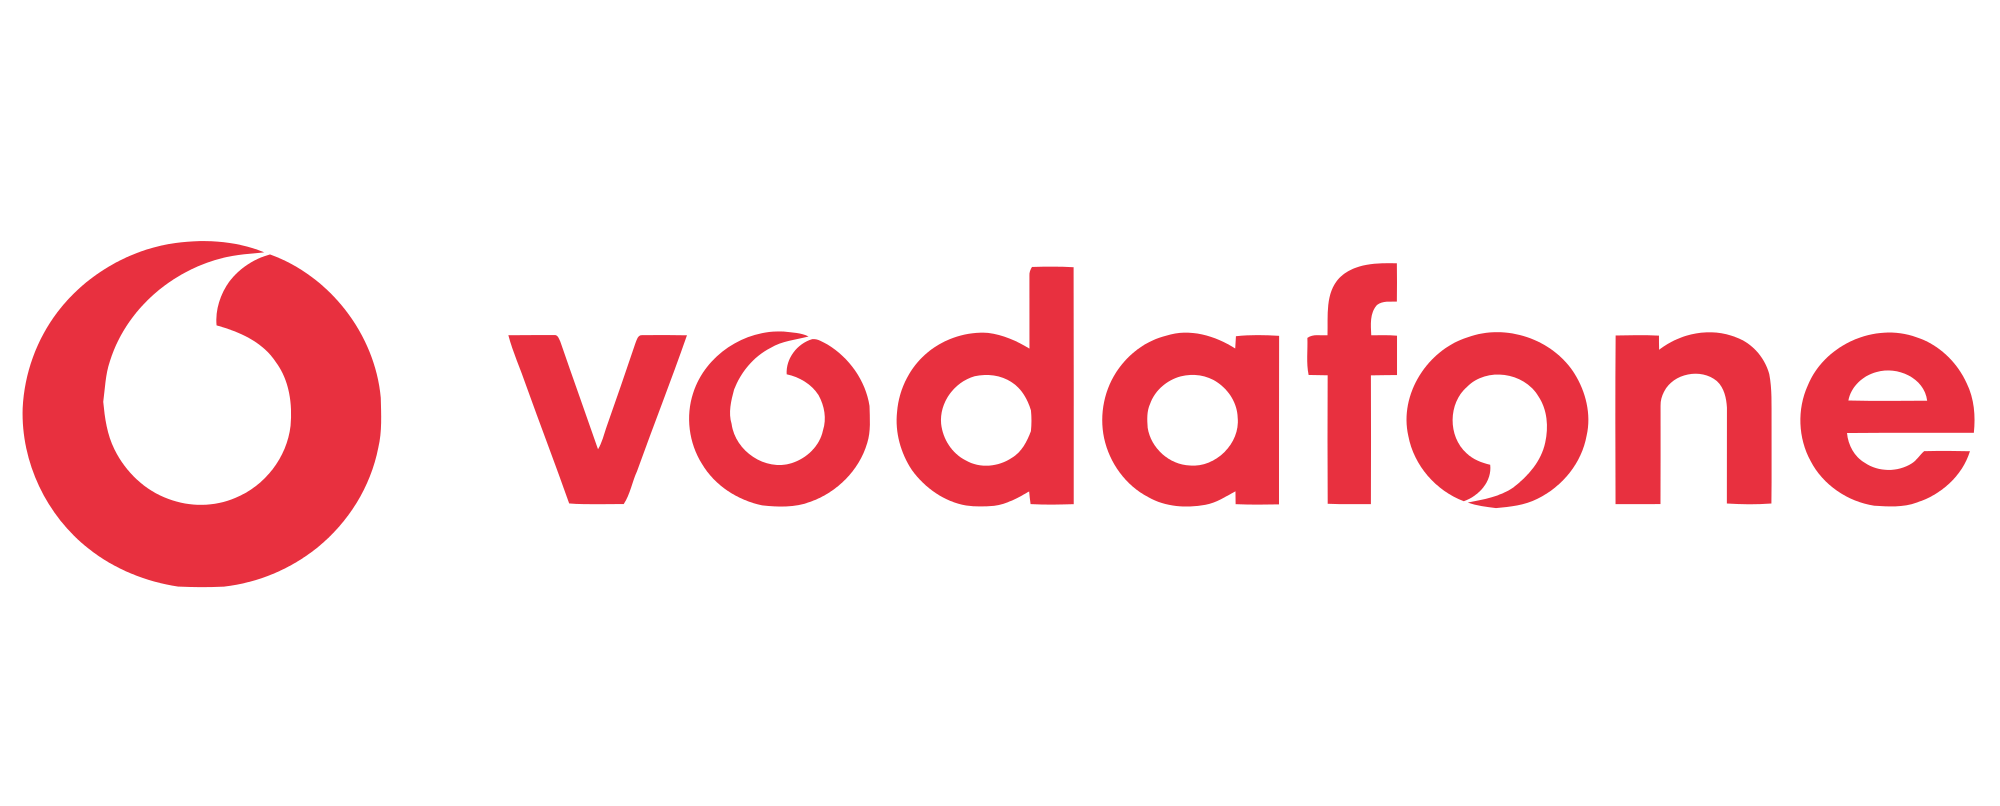 vodafone-png-1200